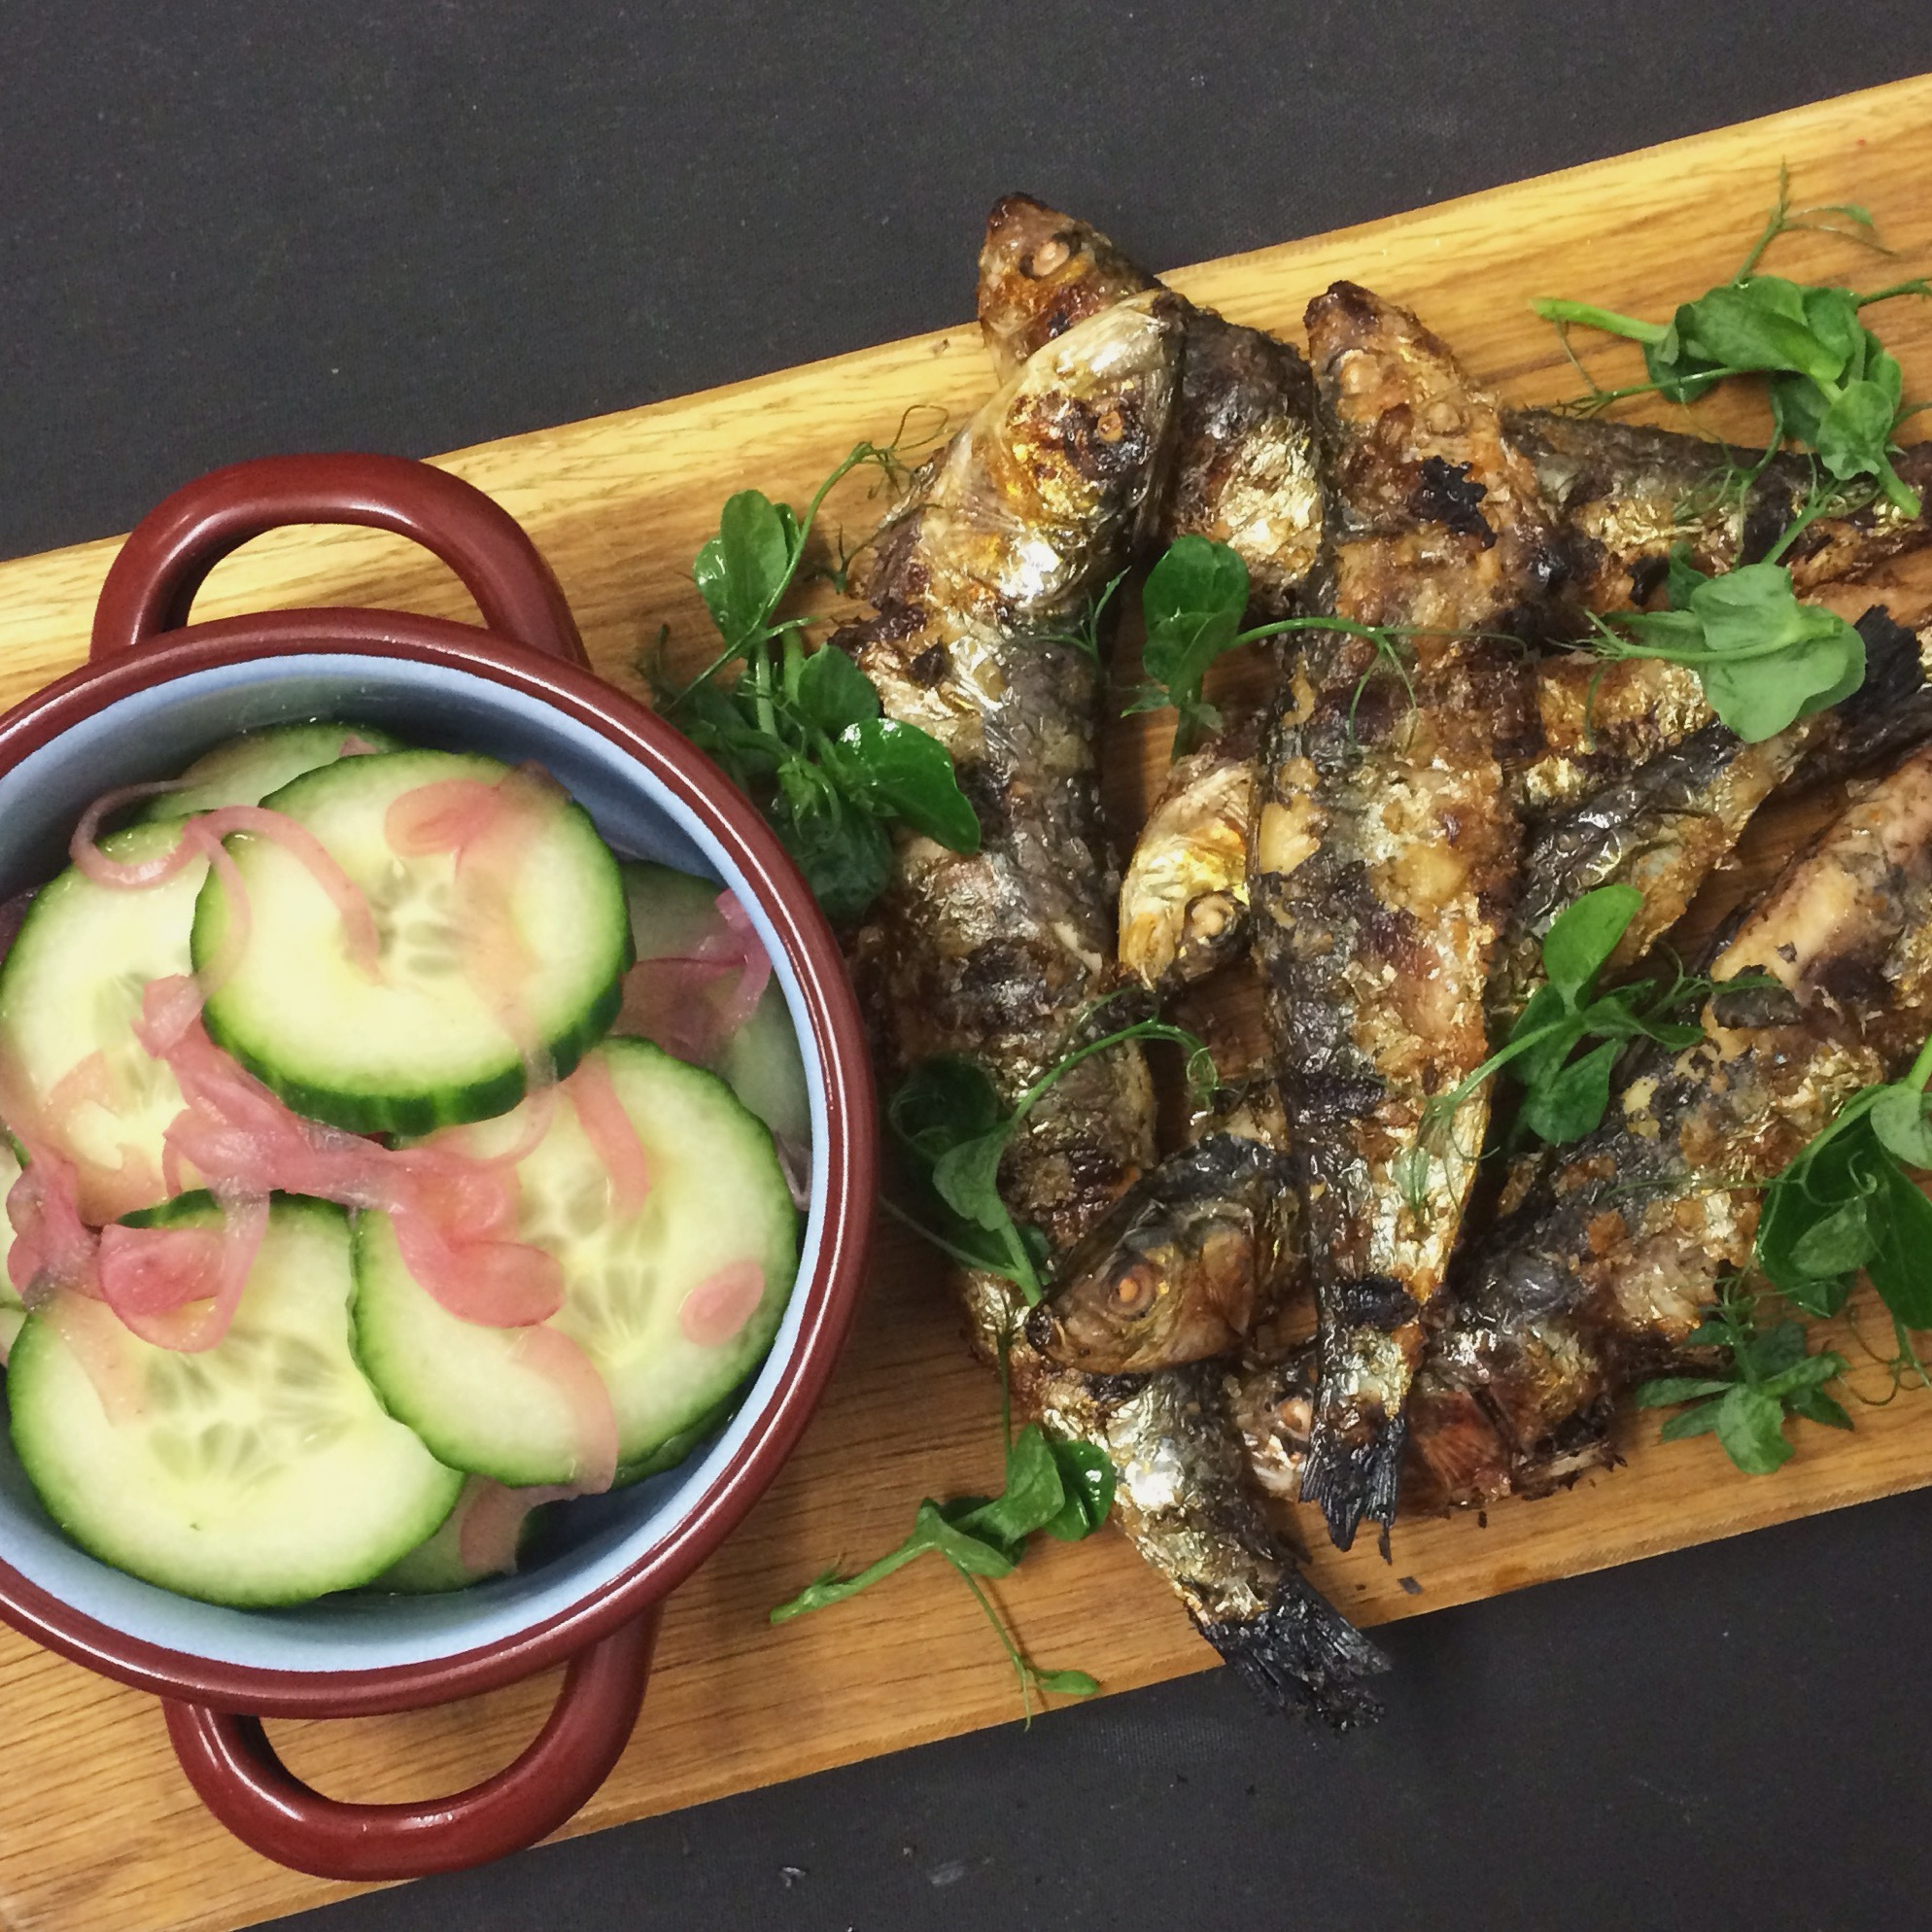 andy-bates-sardines-cucumber-red-onion-salad